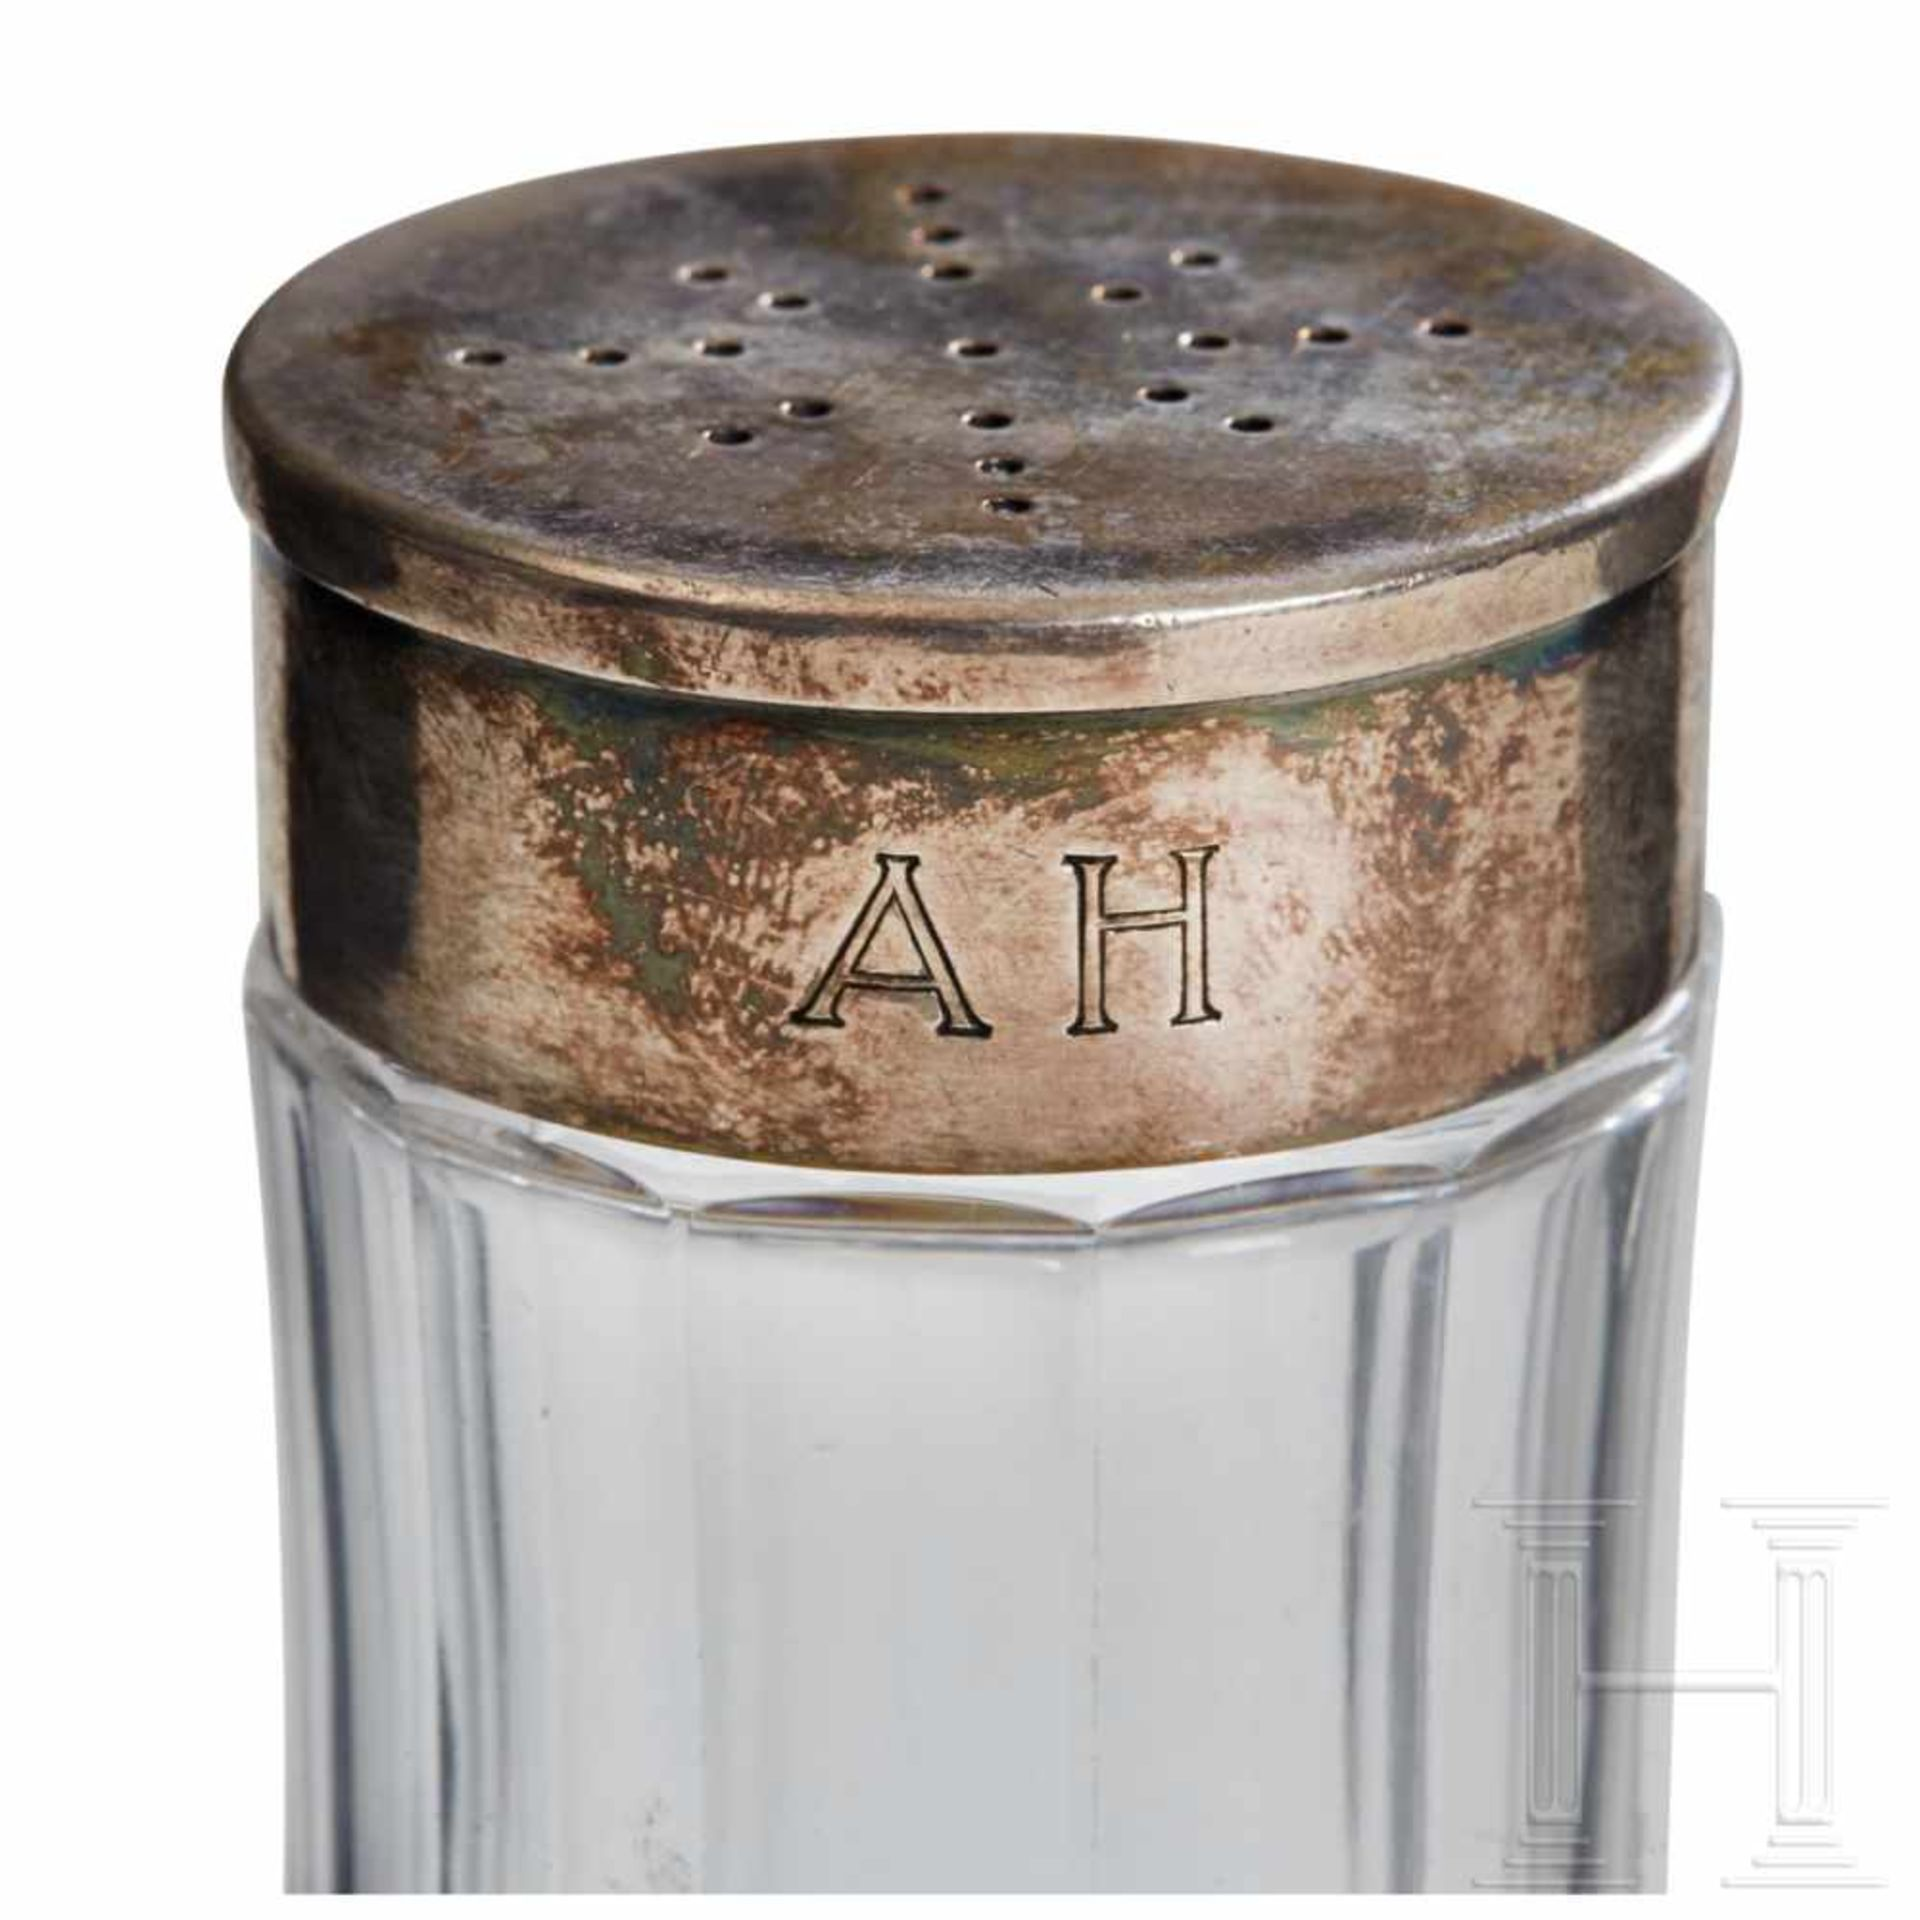 Los 6057 - Adolf Hitler – a Sugar Shaker from his Personal Silver ServicePolished crystal glass with a silver